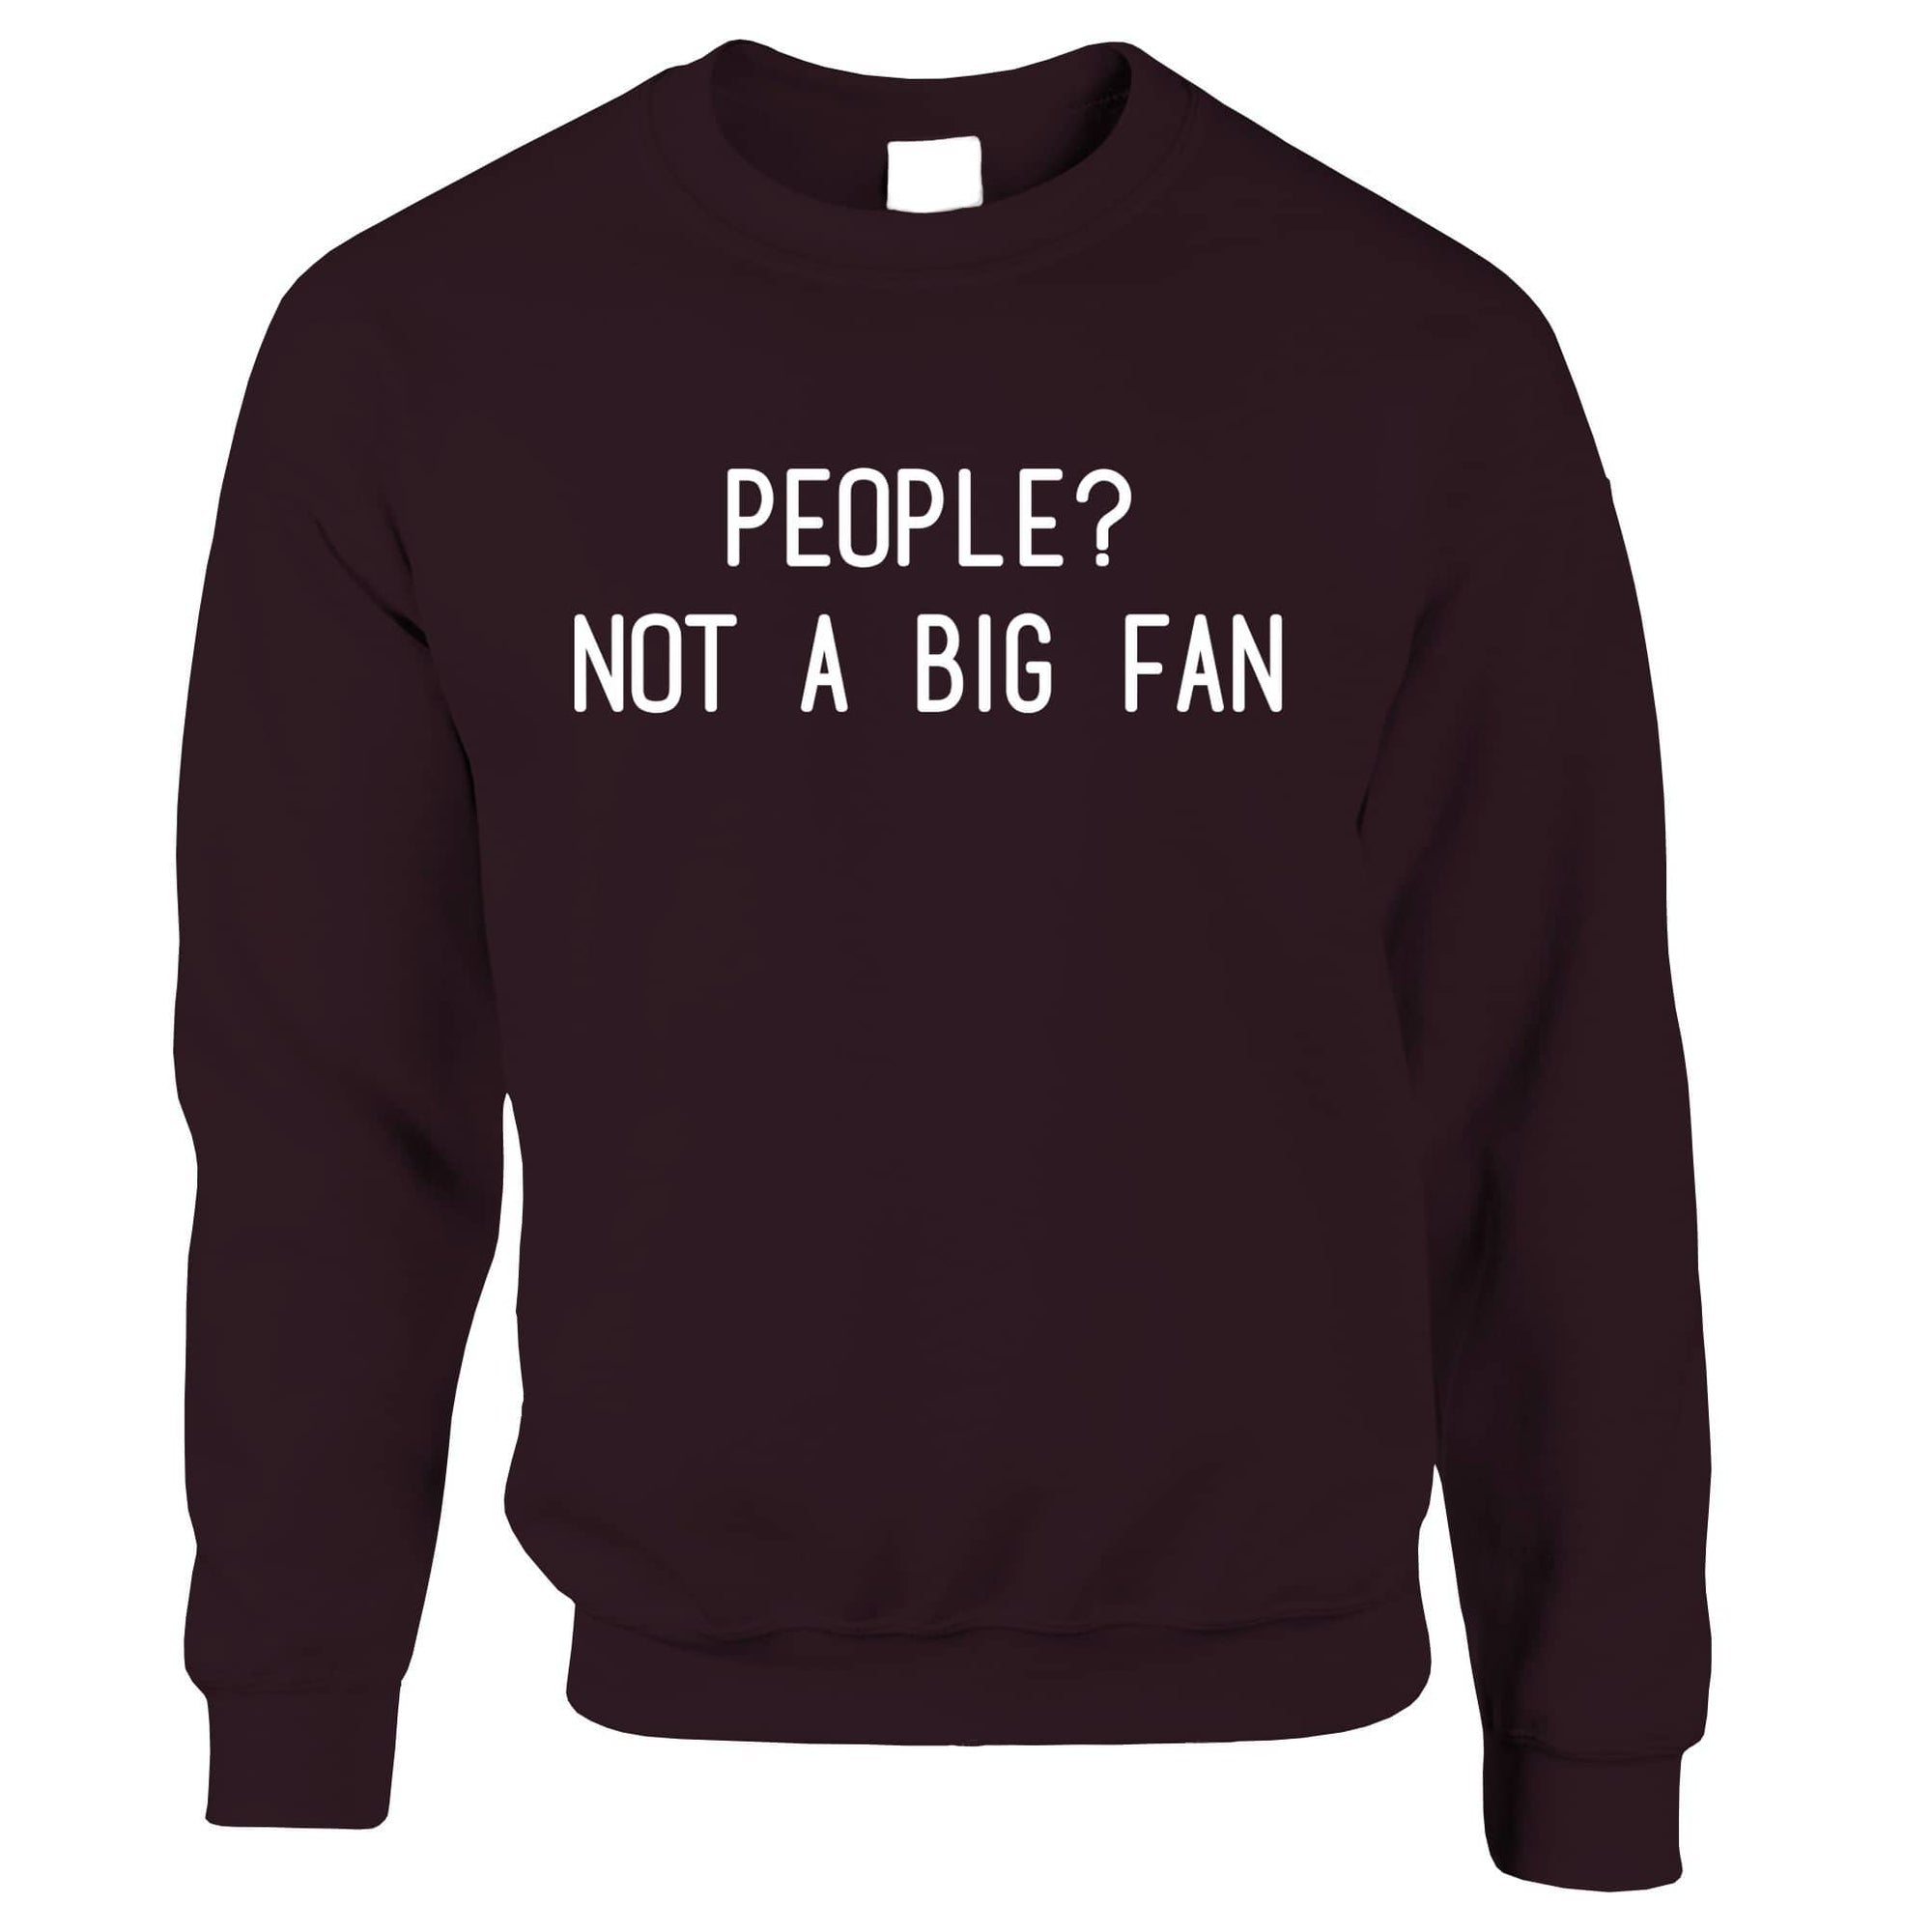 Awkward Joke Jumper People? Not A Big Fan Slogan Sweatshirt Sweater